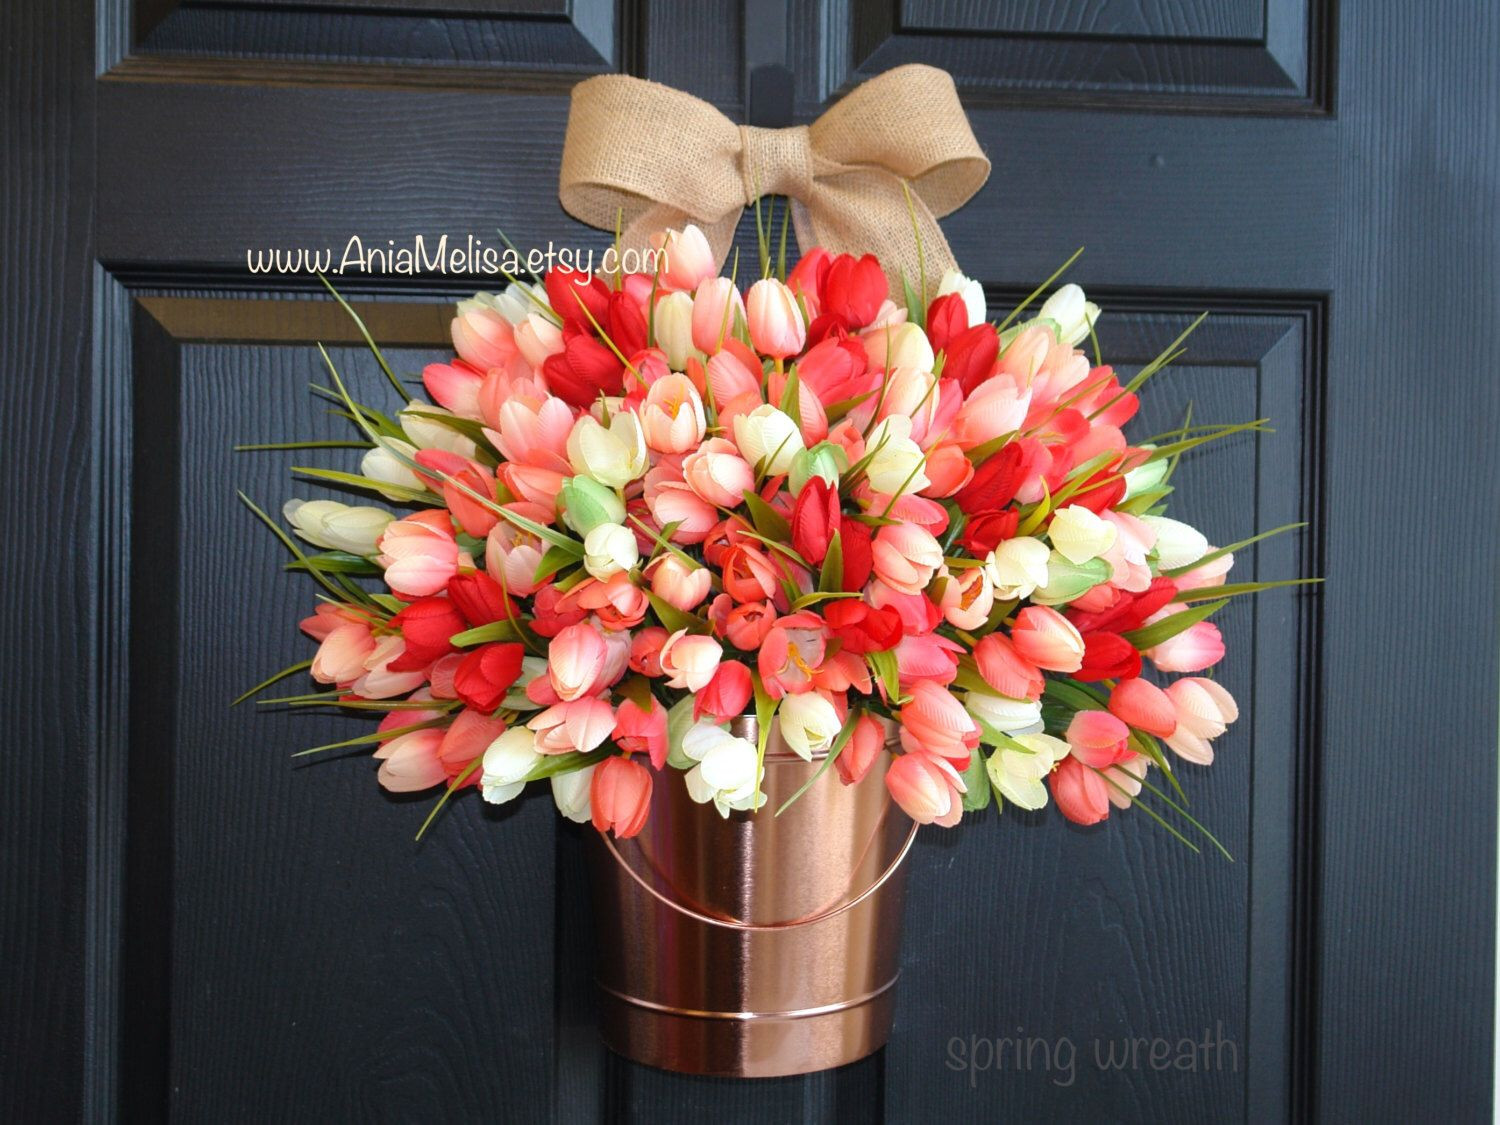 tulip vase ideas of spring wreath spring wreaths easter wreath flowers vases coral pertaining to spring wreath spring wreaths easter wreath flowers vases coral tulips wreaths front door decorations wreaths by